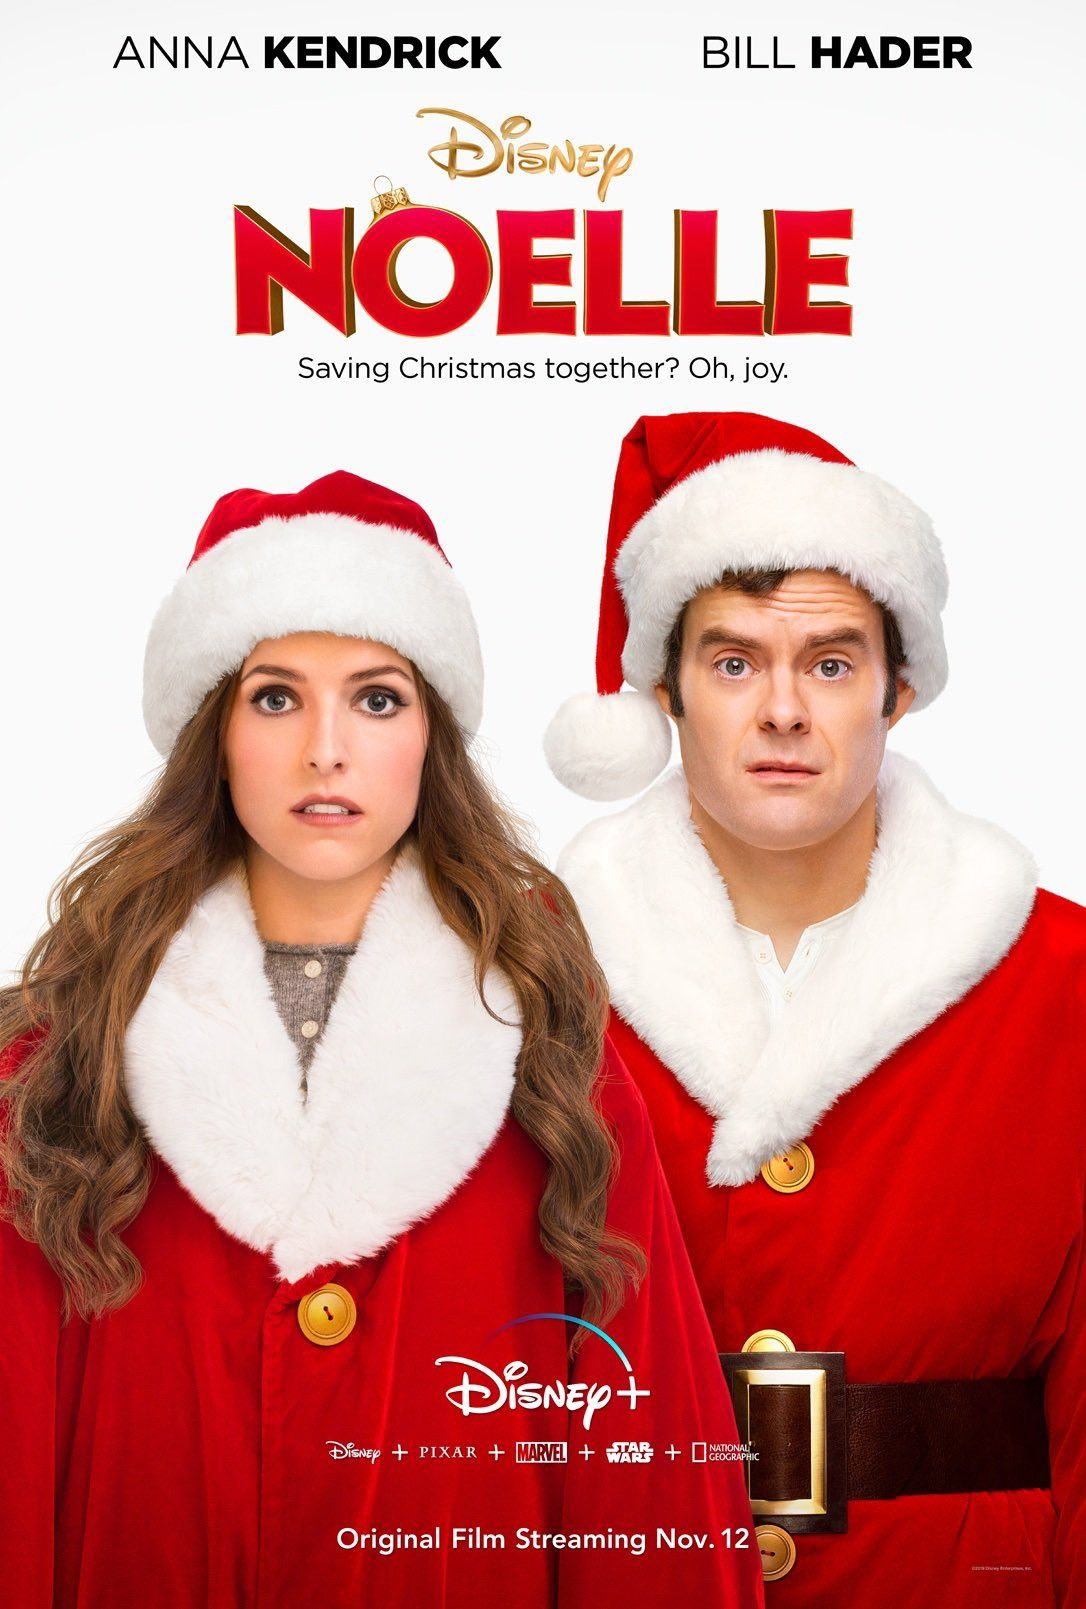 Poster For Anna Kendrick And Bill Hader Christmas Movie Noelle Streaming On Disney On November 12thhttps Disney Christmas Movies Anna Kendrick Disney Plus